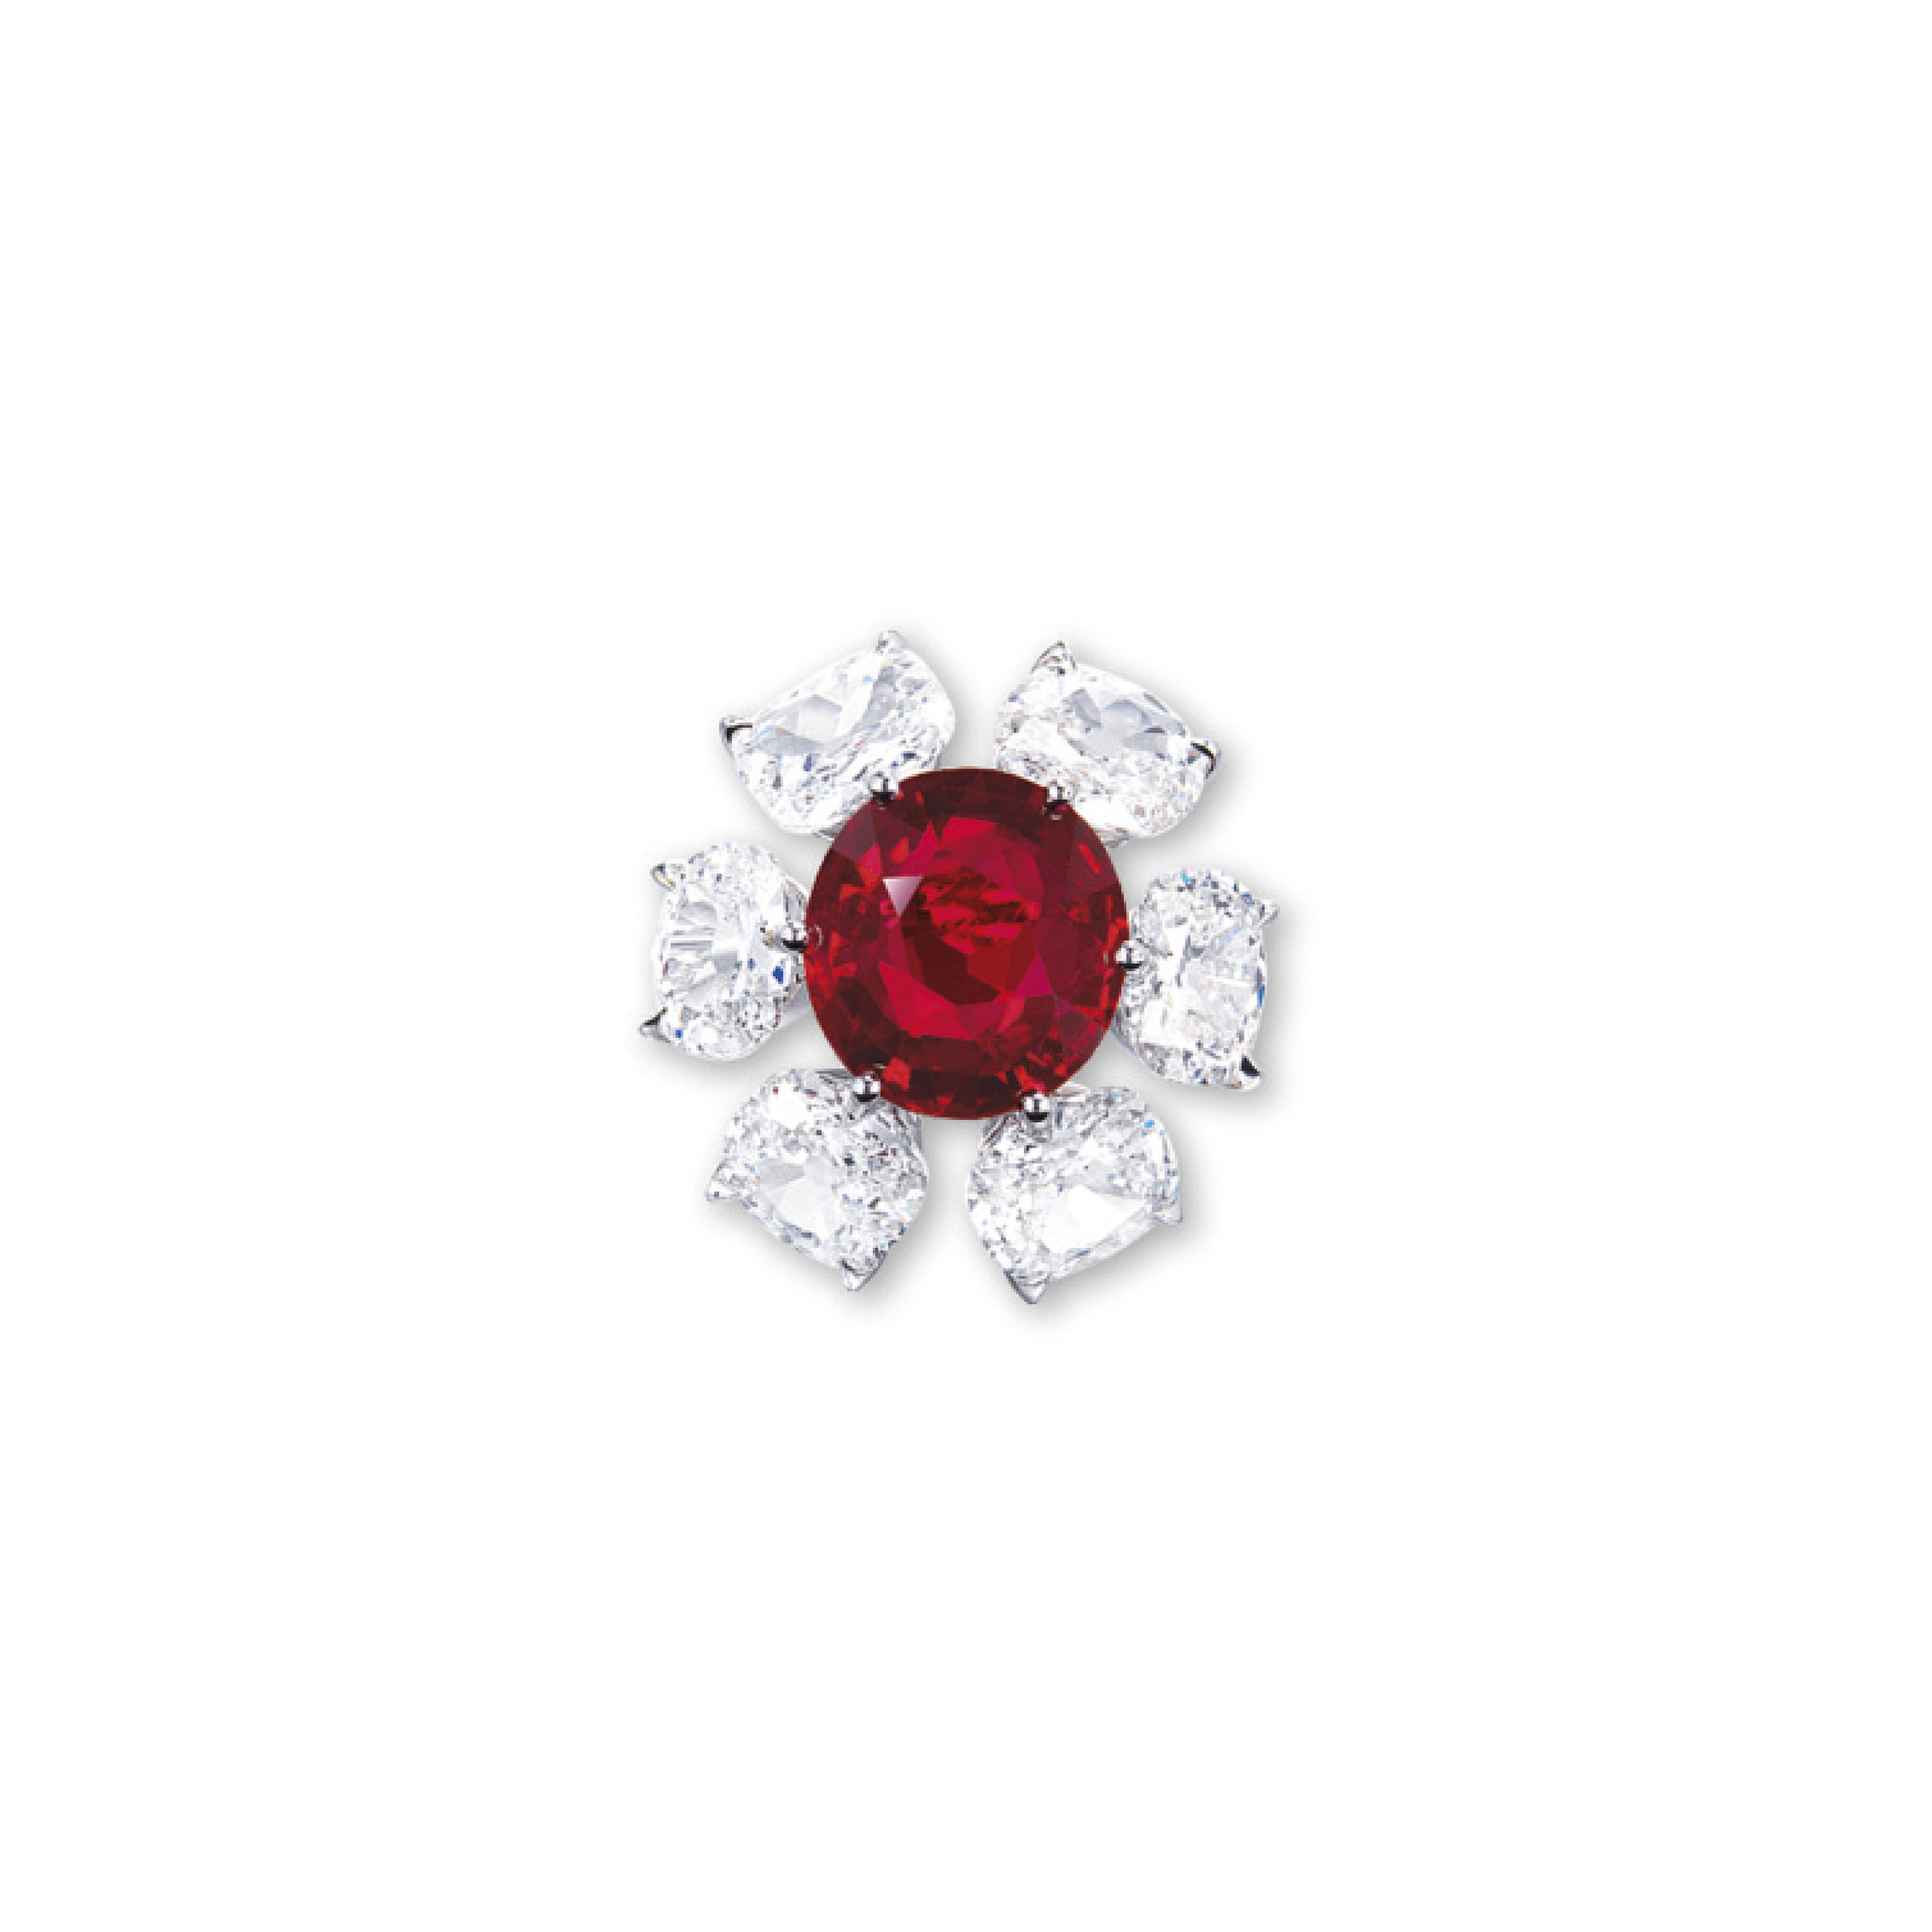 A SUPERB RUBY AND DIAMOND RING, BY ETCETERA